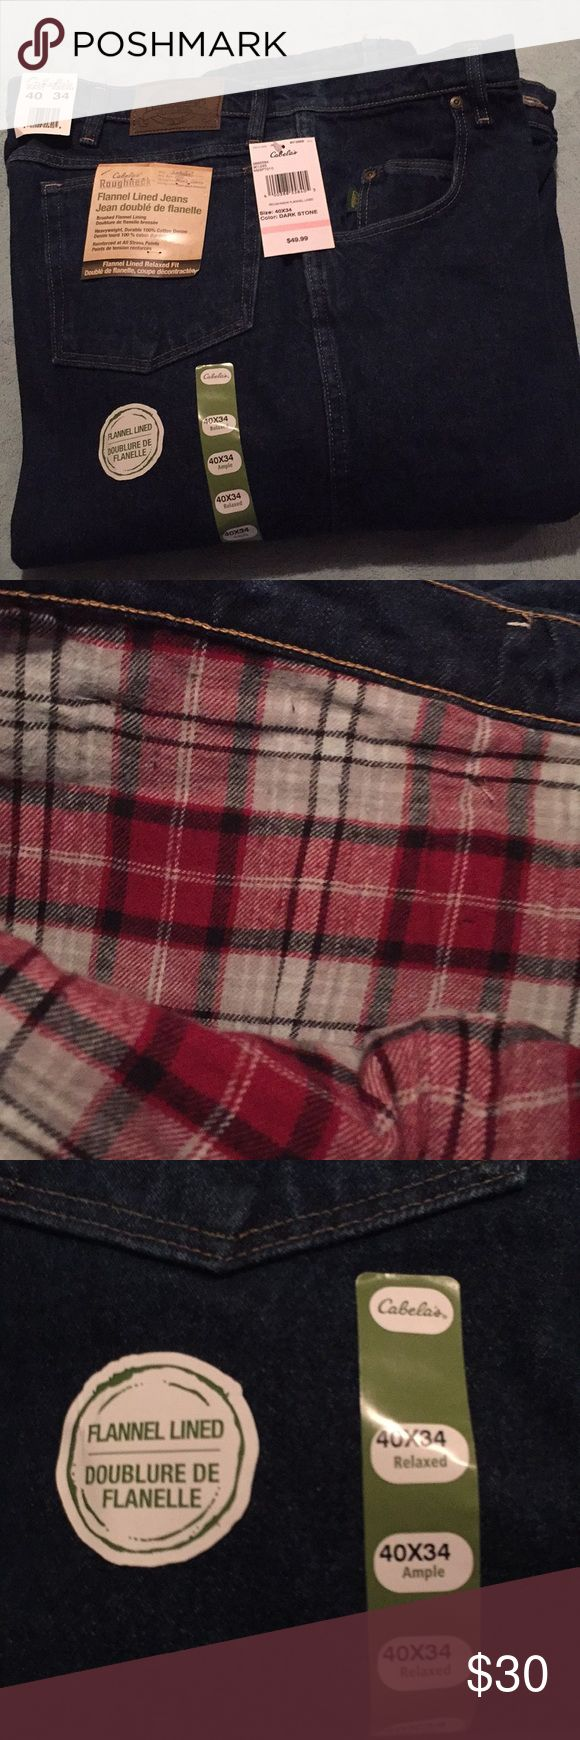 Cabela's flannel lined jeans NWT 40x34 Brand new flannel lined jeans. Great for the cold weather months. 40x34 cabela's Jeans Relaxed